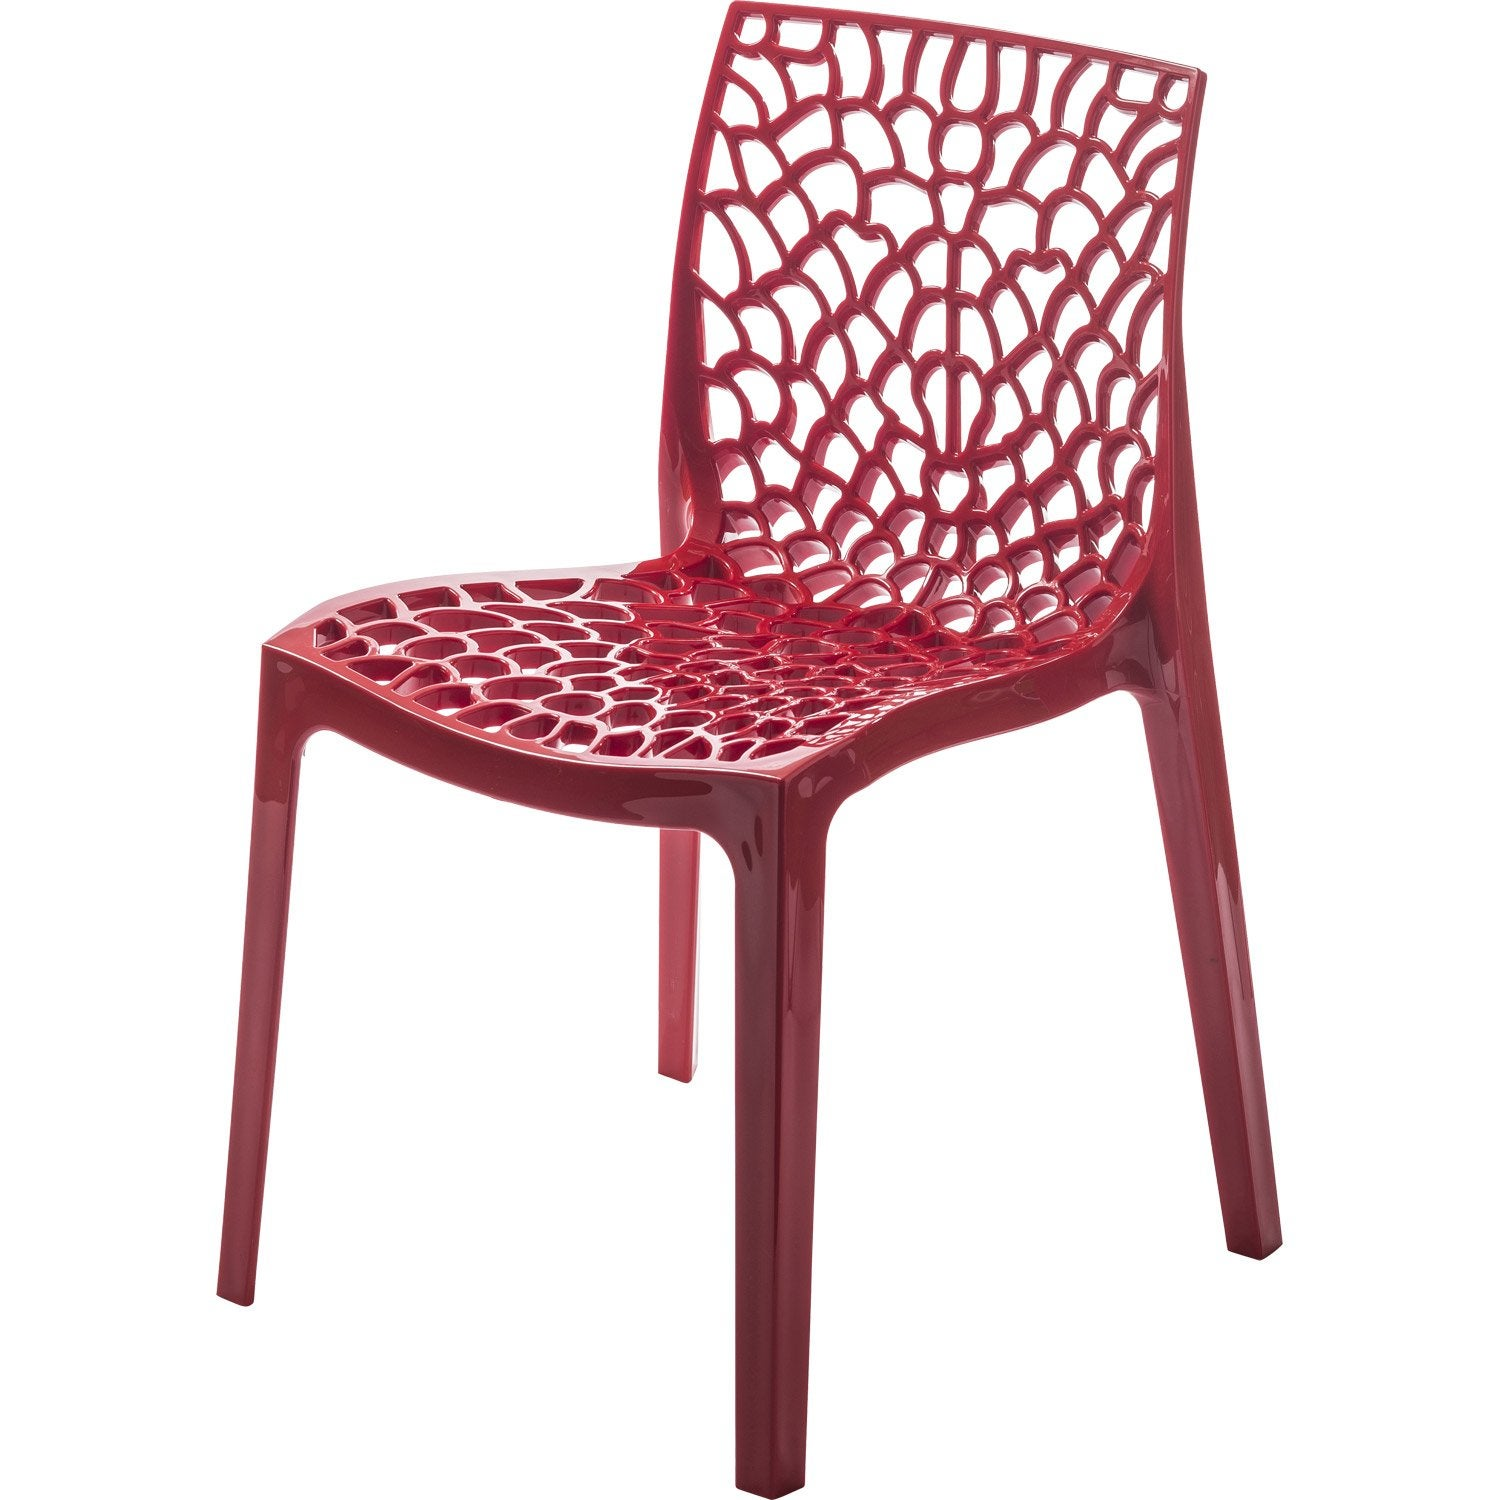 Chaise de jardin en r sine grafik rouge leroy merlin for Chaise rouge